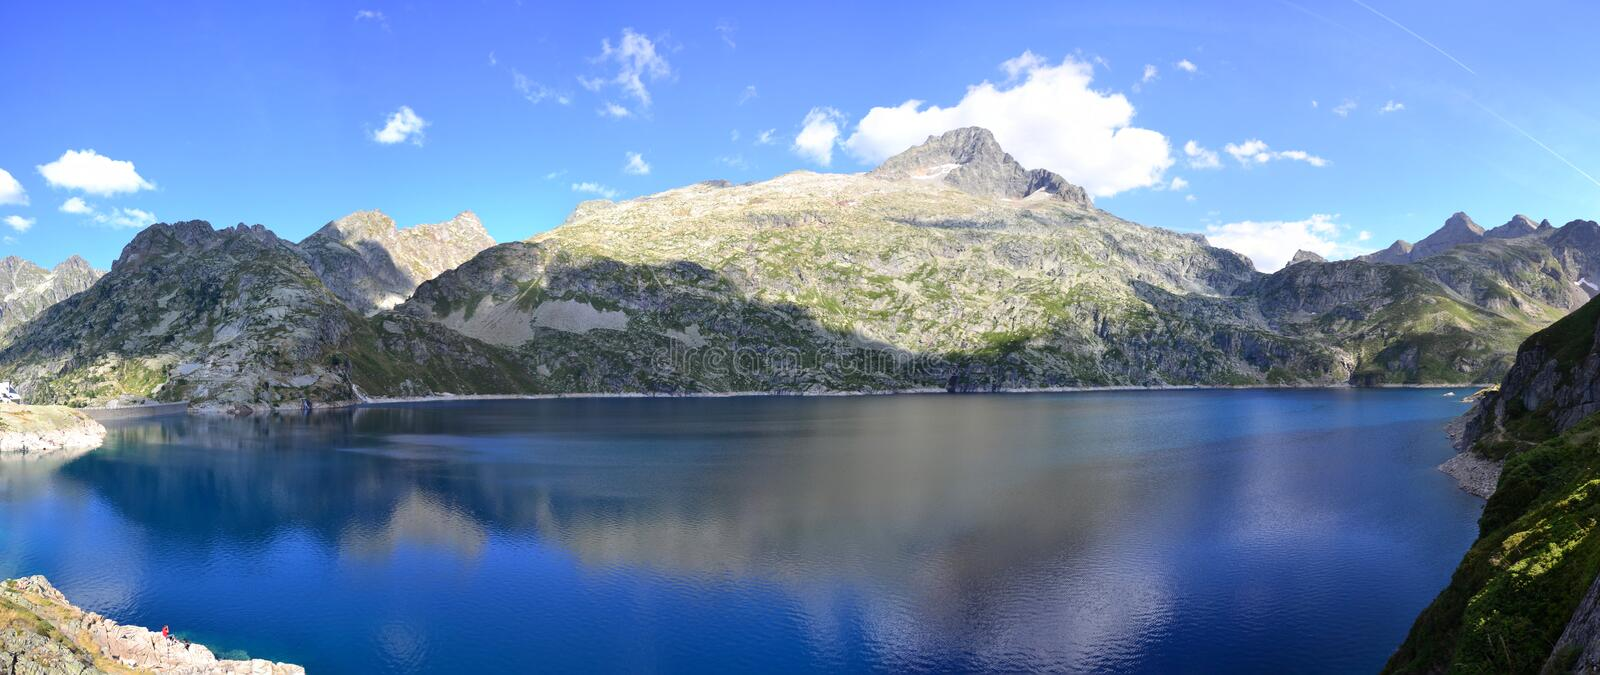 Blue Body Of Water With Green Mountain As Background During Daytime Free Public Domain Cc0 Image